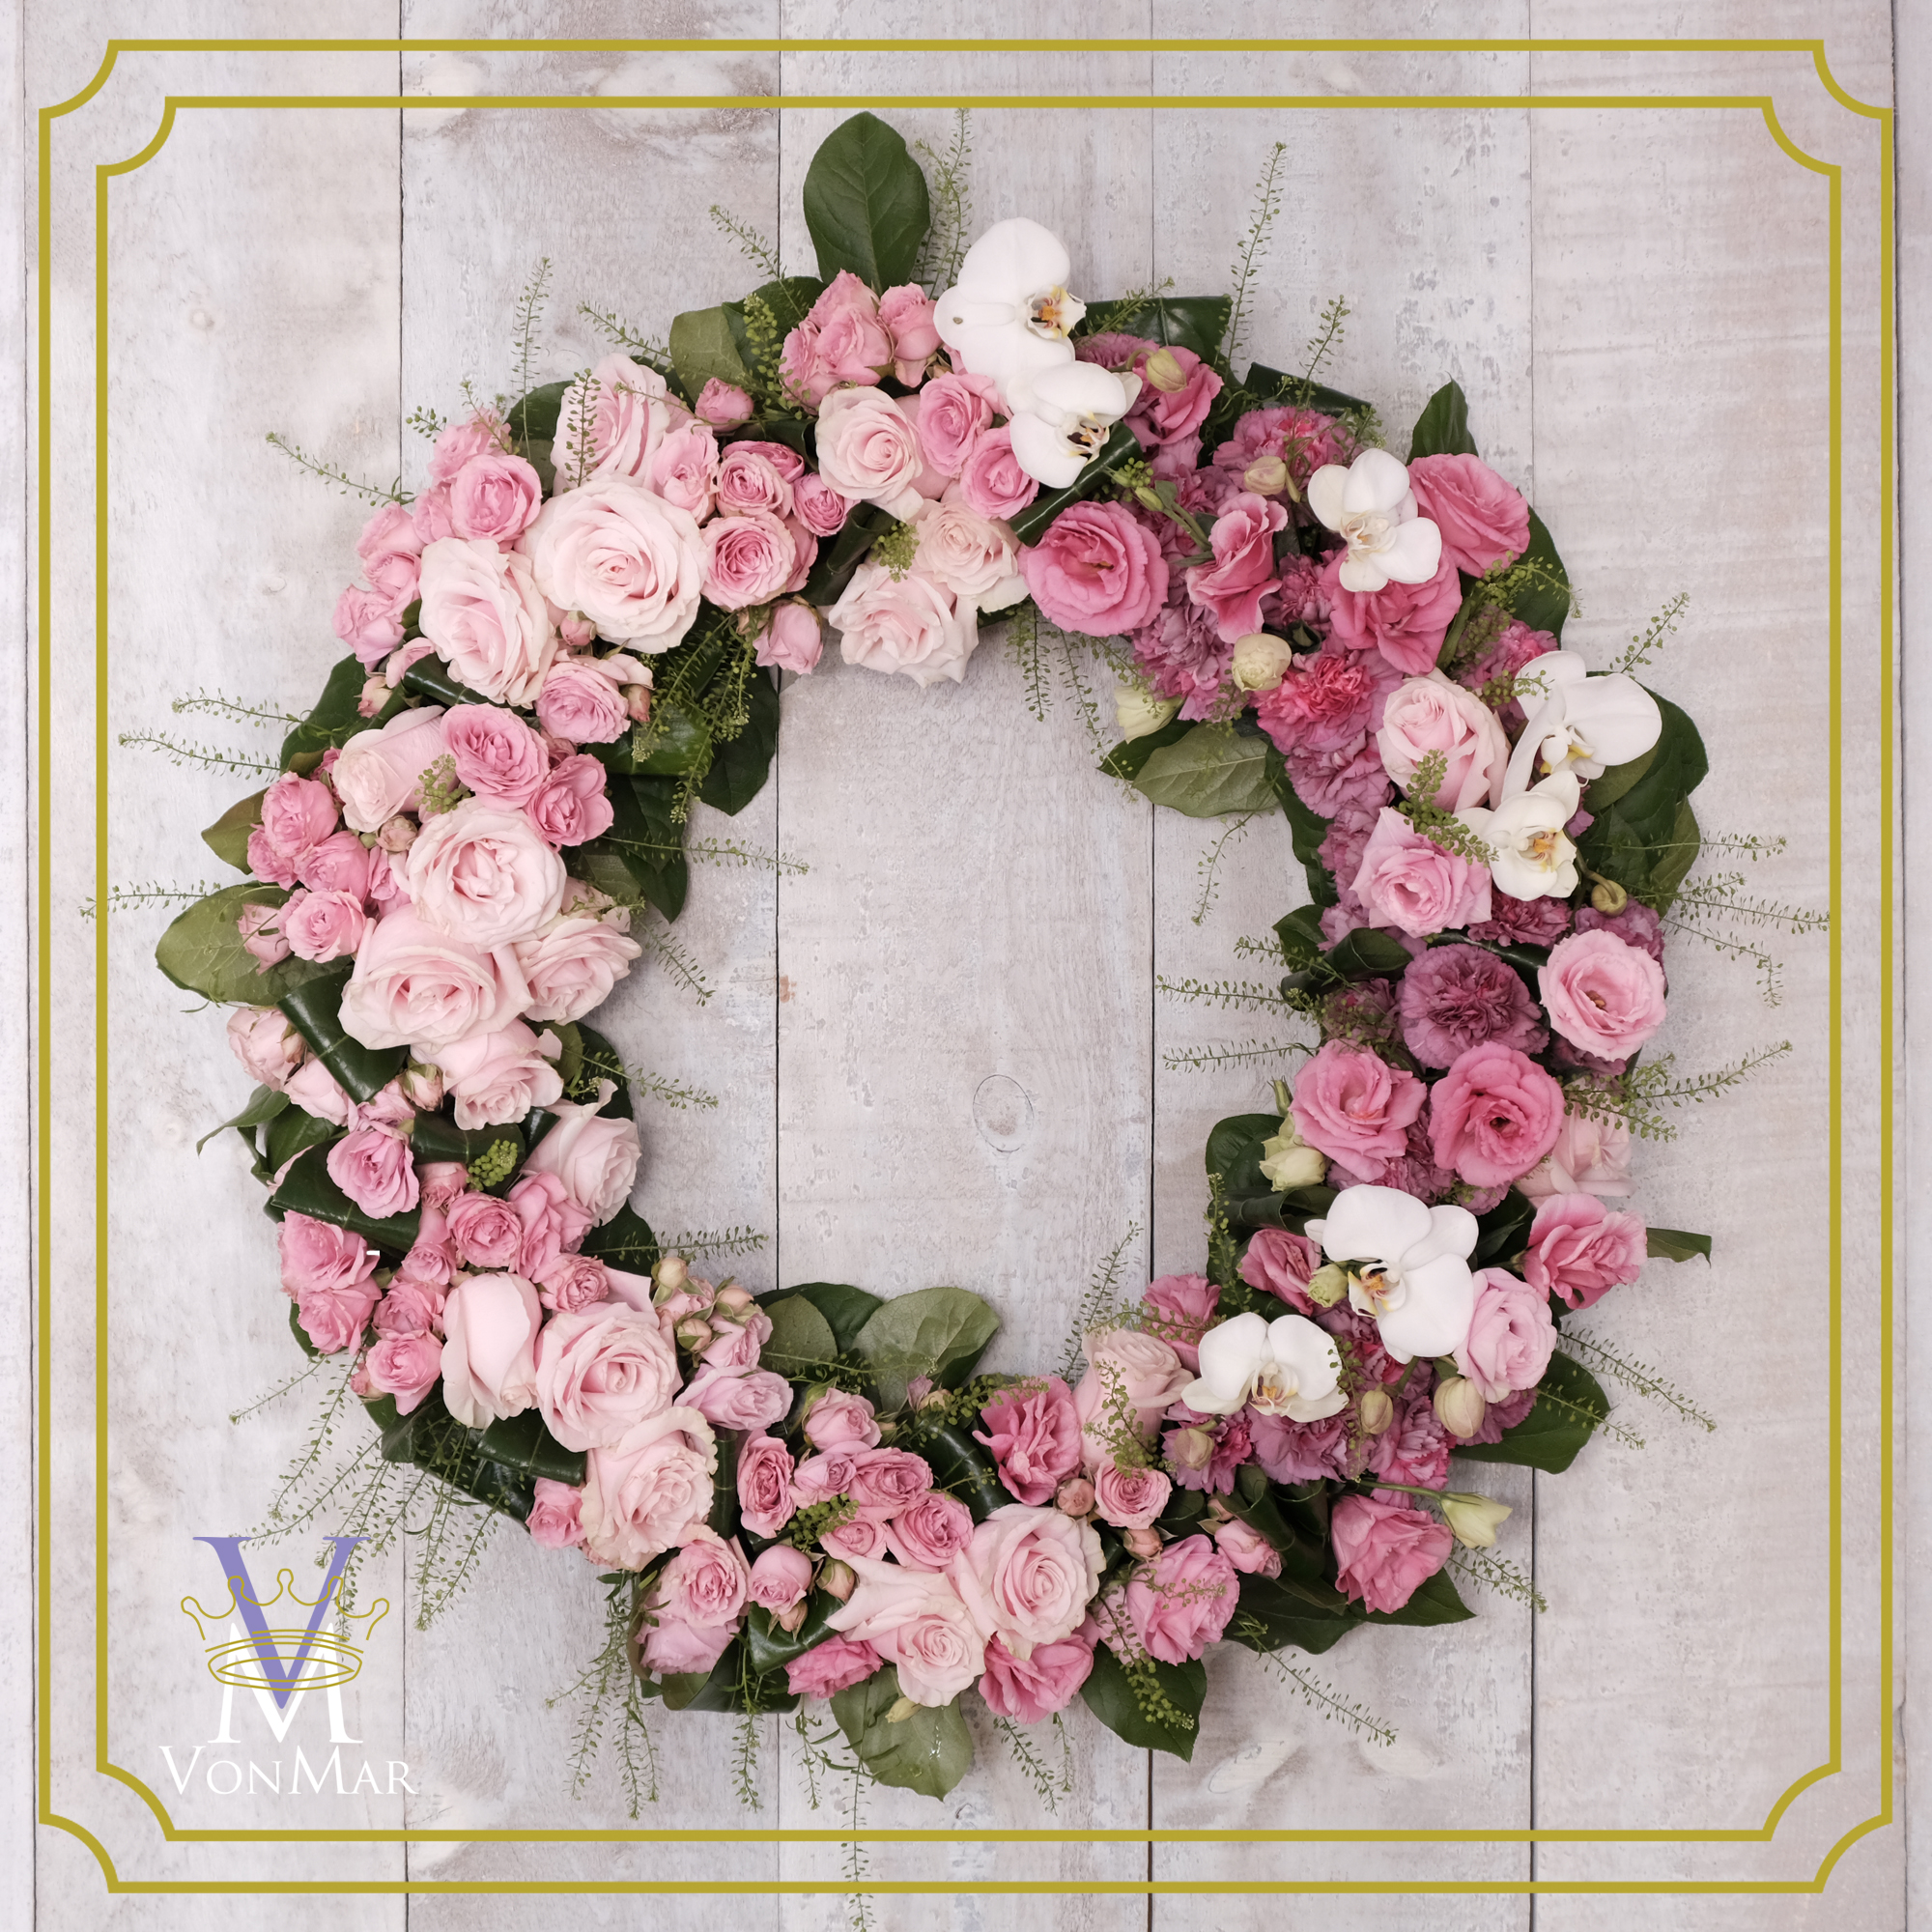 Tribute wreath in hues of pinks